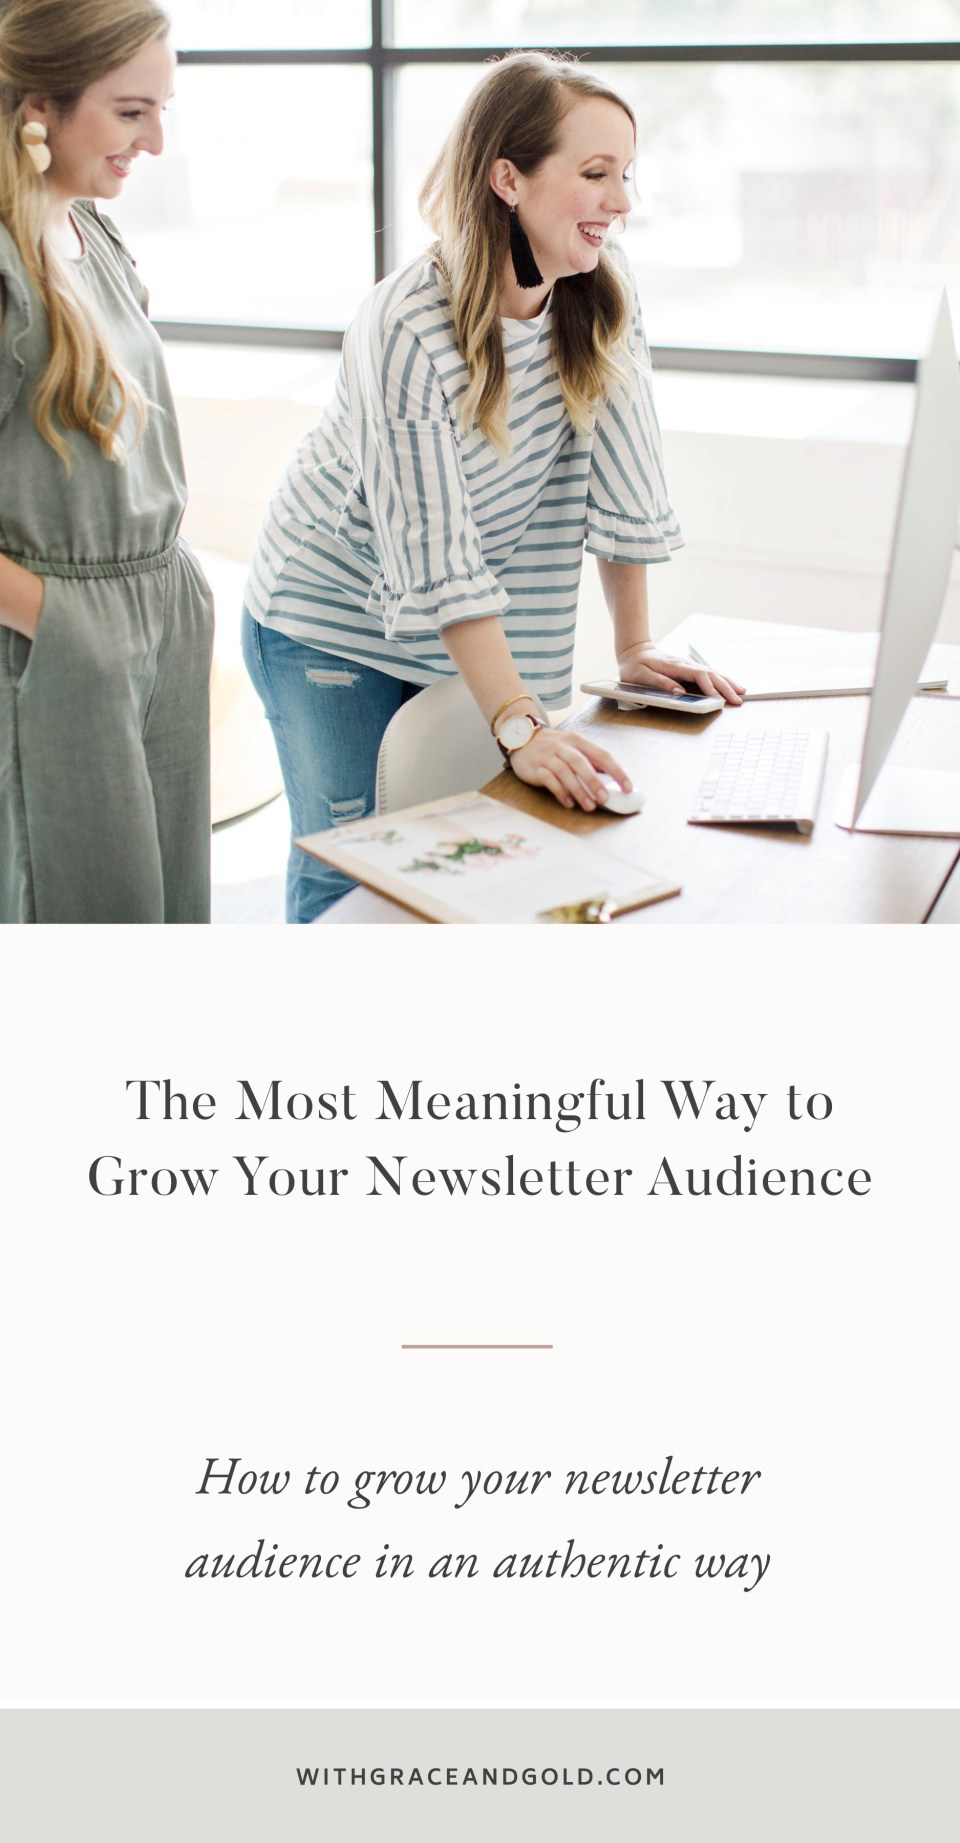 The Most Meaningful Way to Grow Your Newsletter Audience - With Grace and Gold - Photo